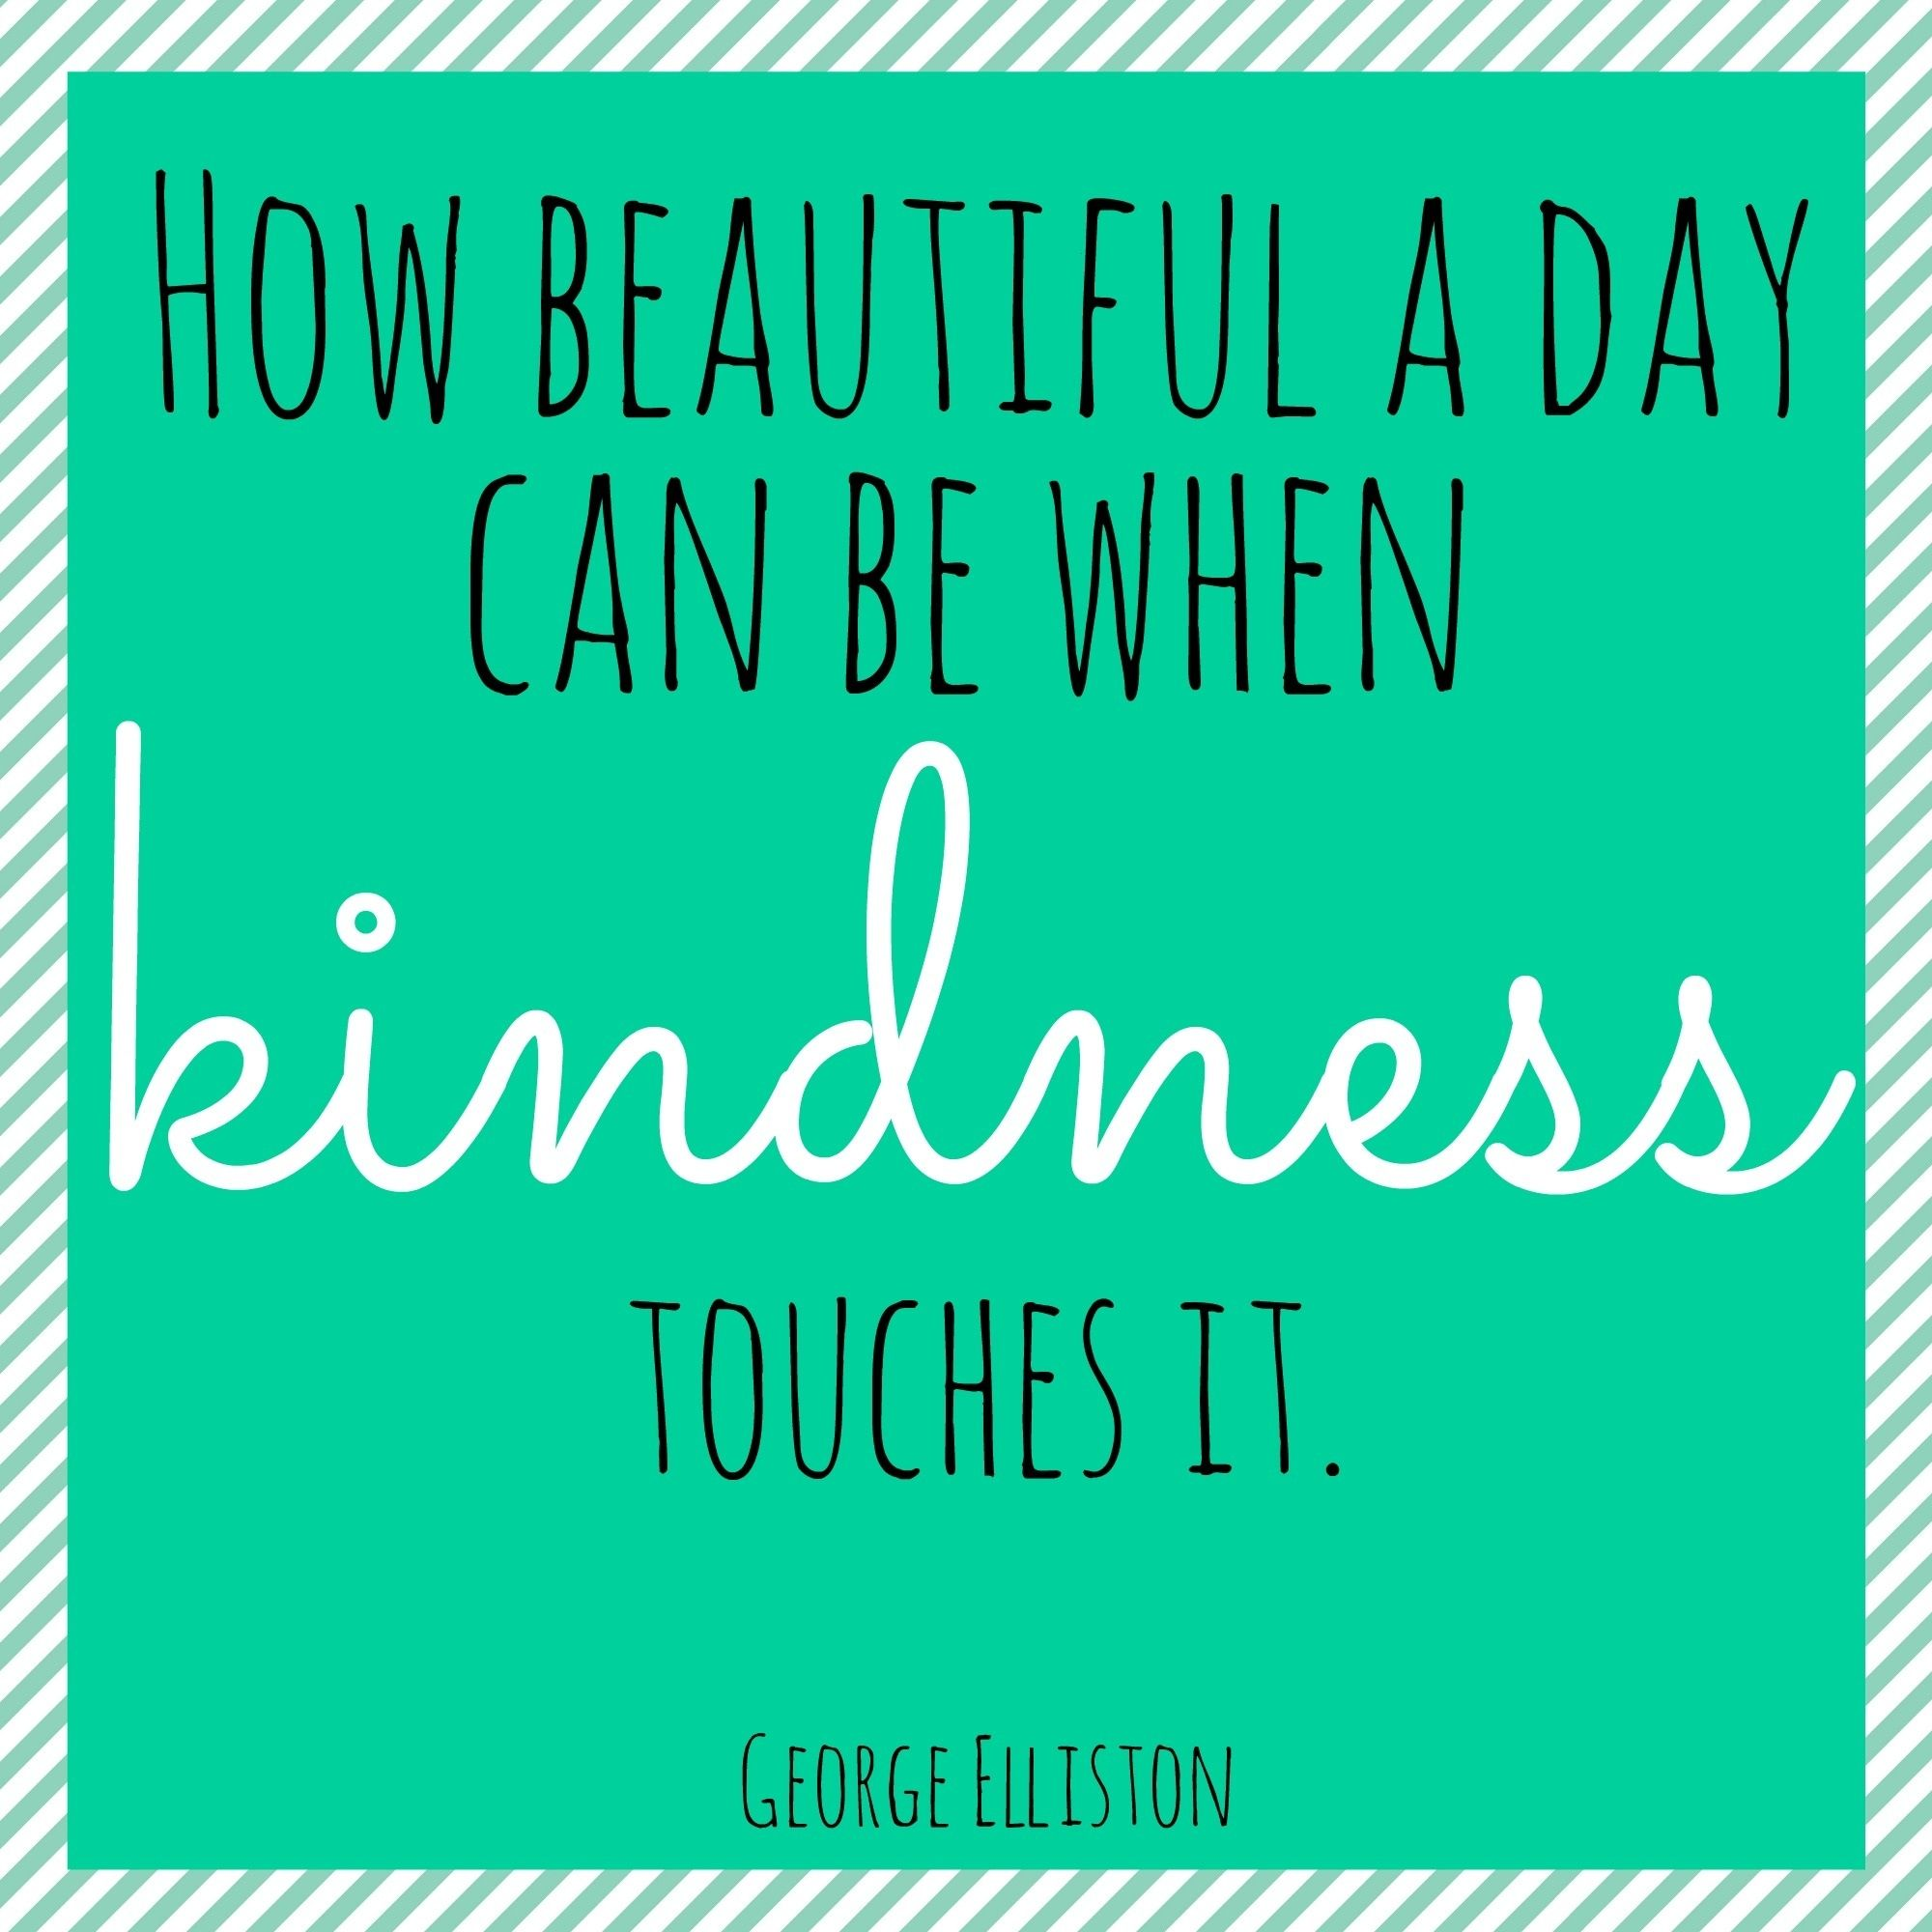 Quotes Kindness Image Result For Quotes About Random Acts Of Kindness  Brush